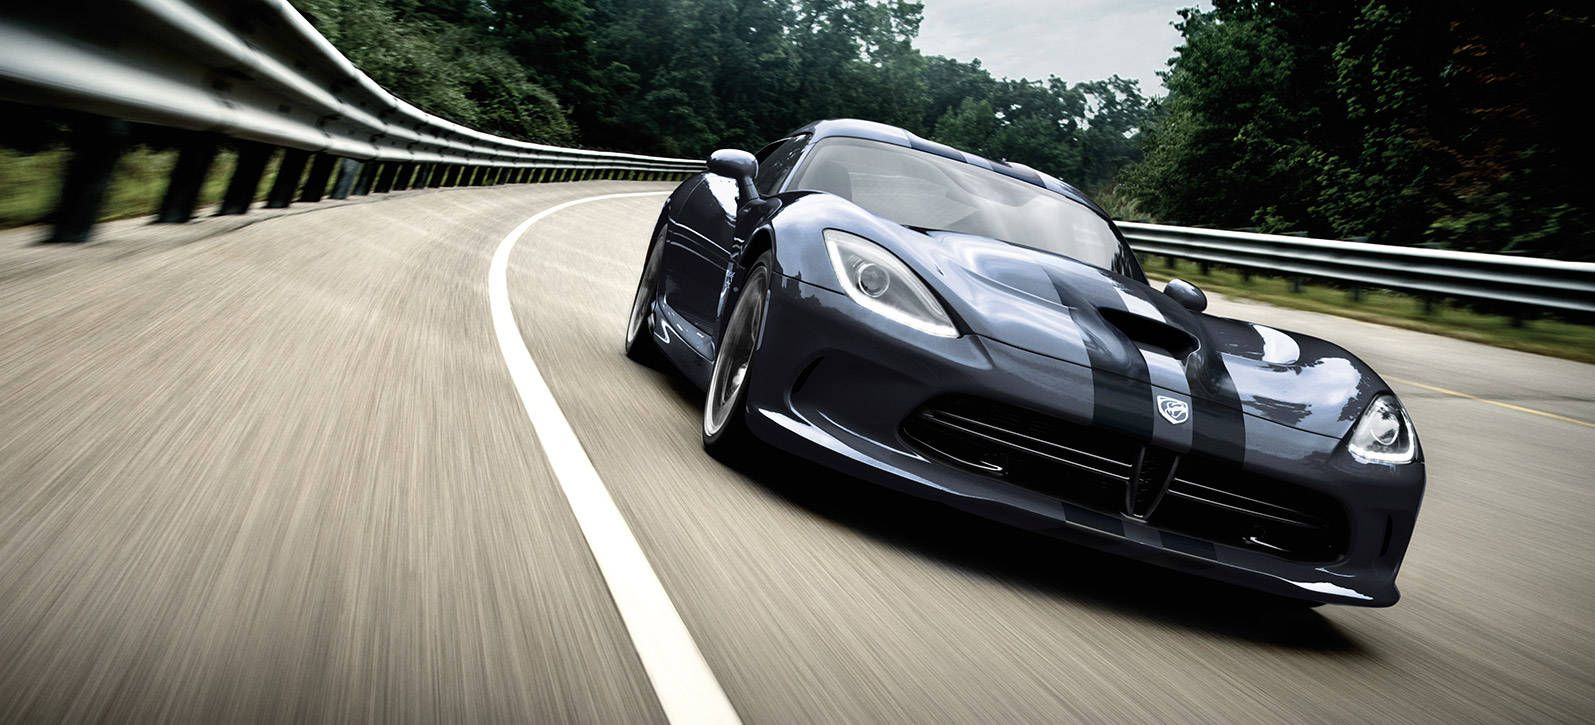 Top 7 Sports Cars That Can Be Hard To Drive